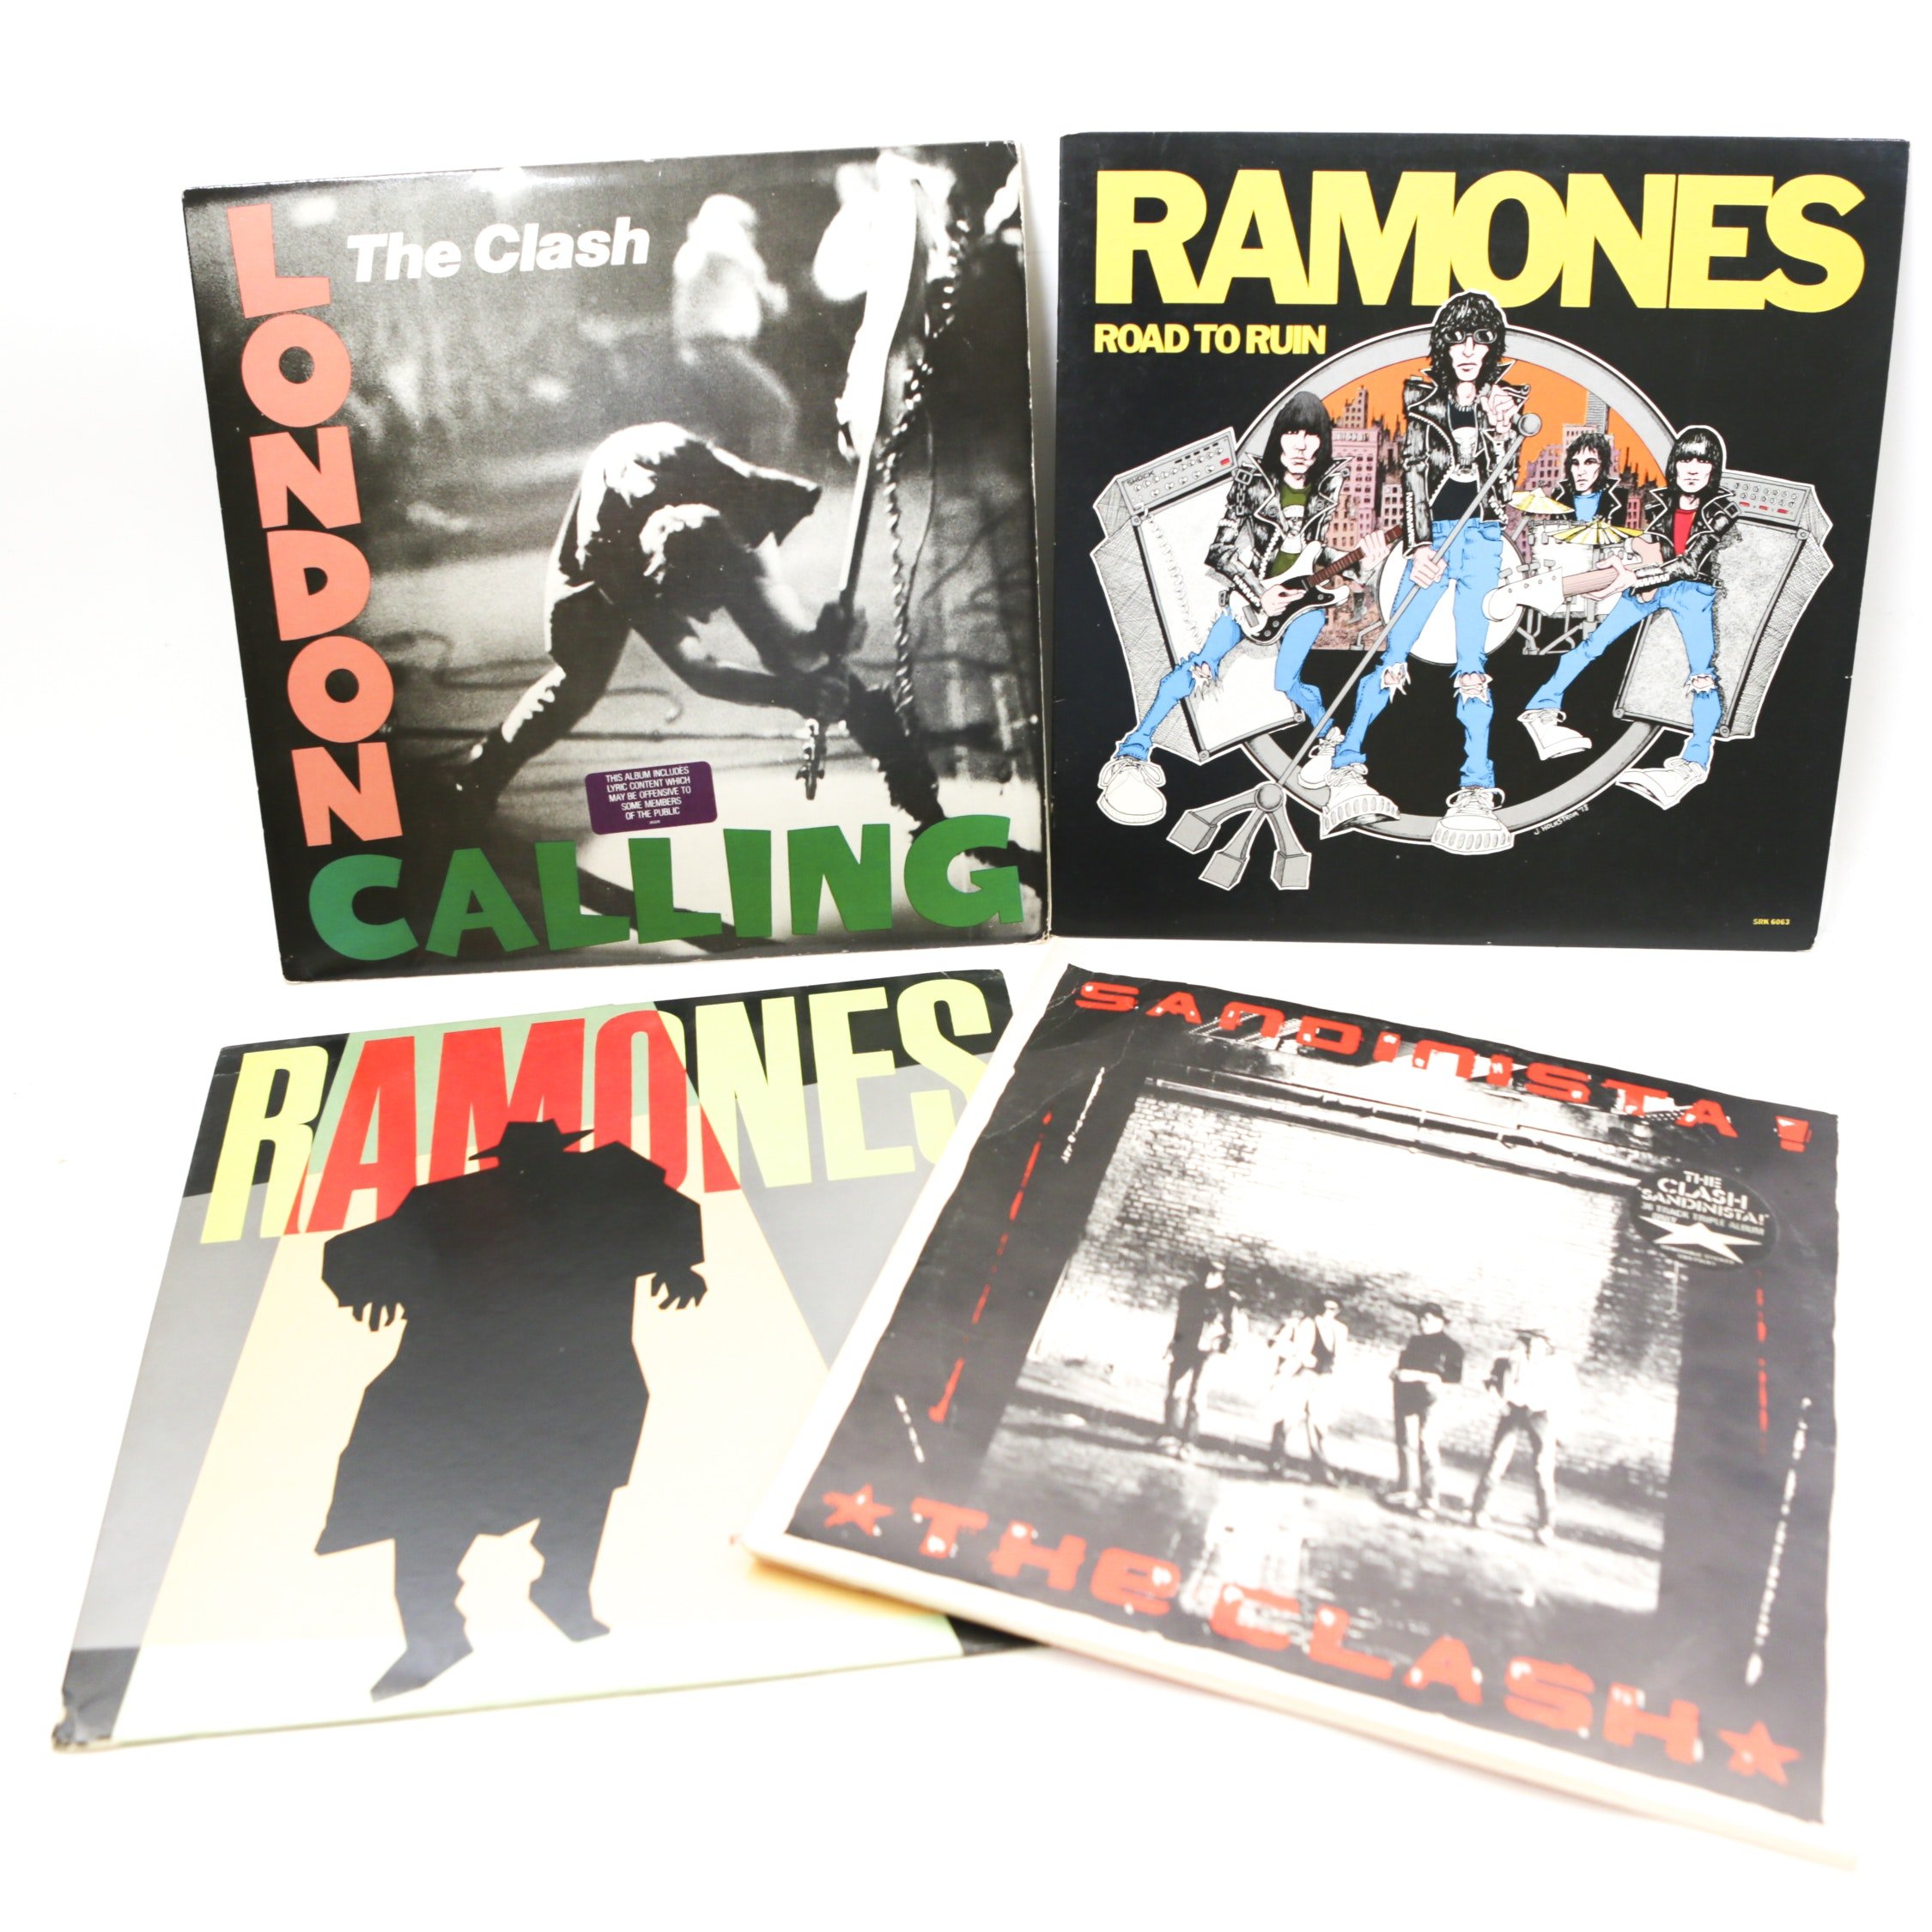 The Ramones and The Clash LP Records